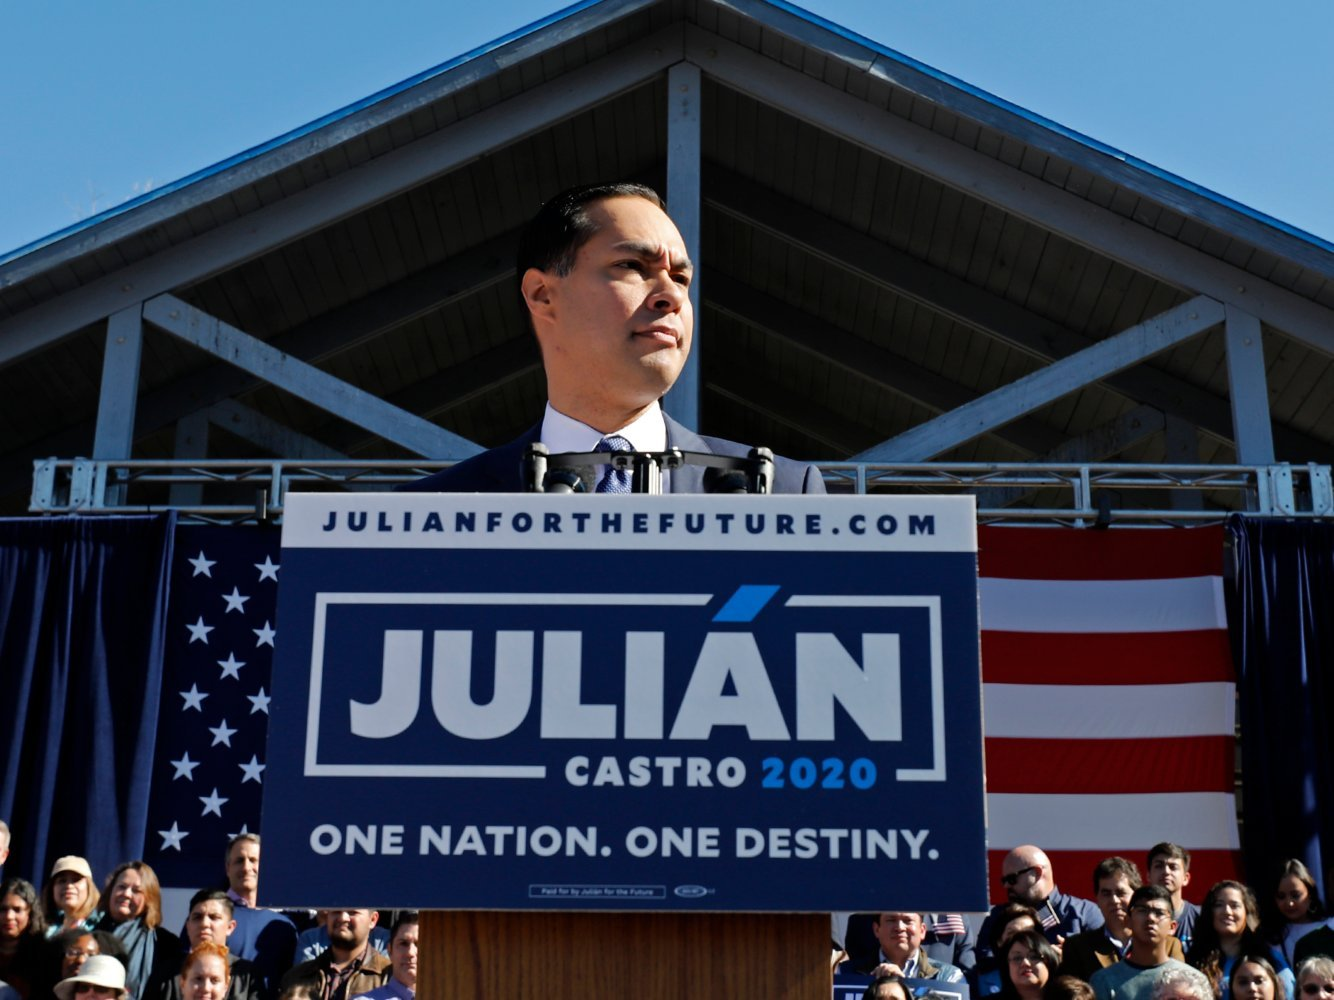 Julián Castro is running for president in 2020. Here's everything we know about the candidate and how he stacks up against the competition.